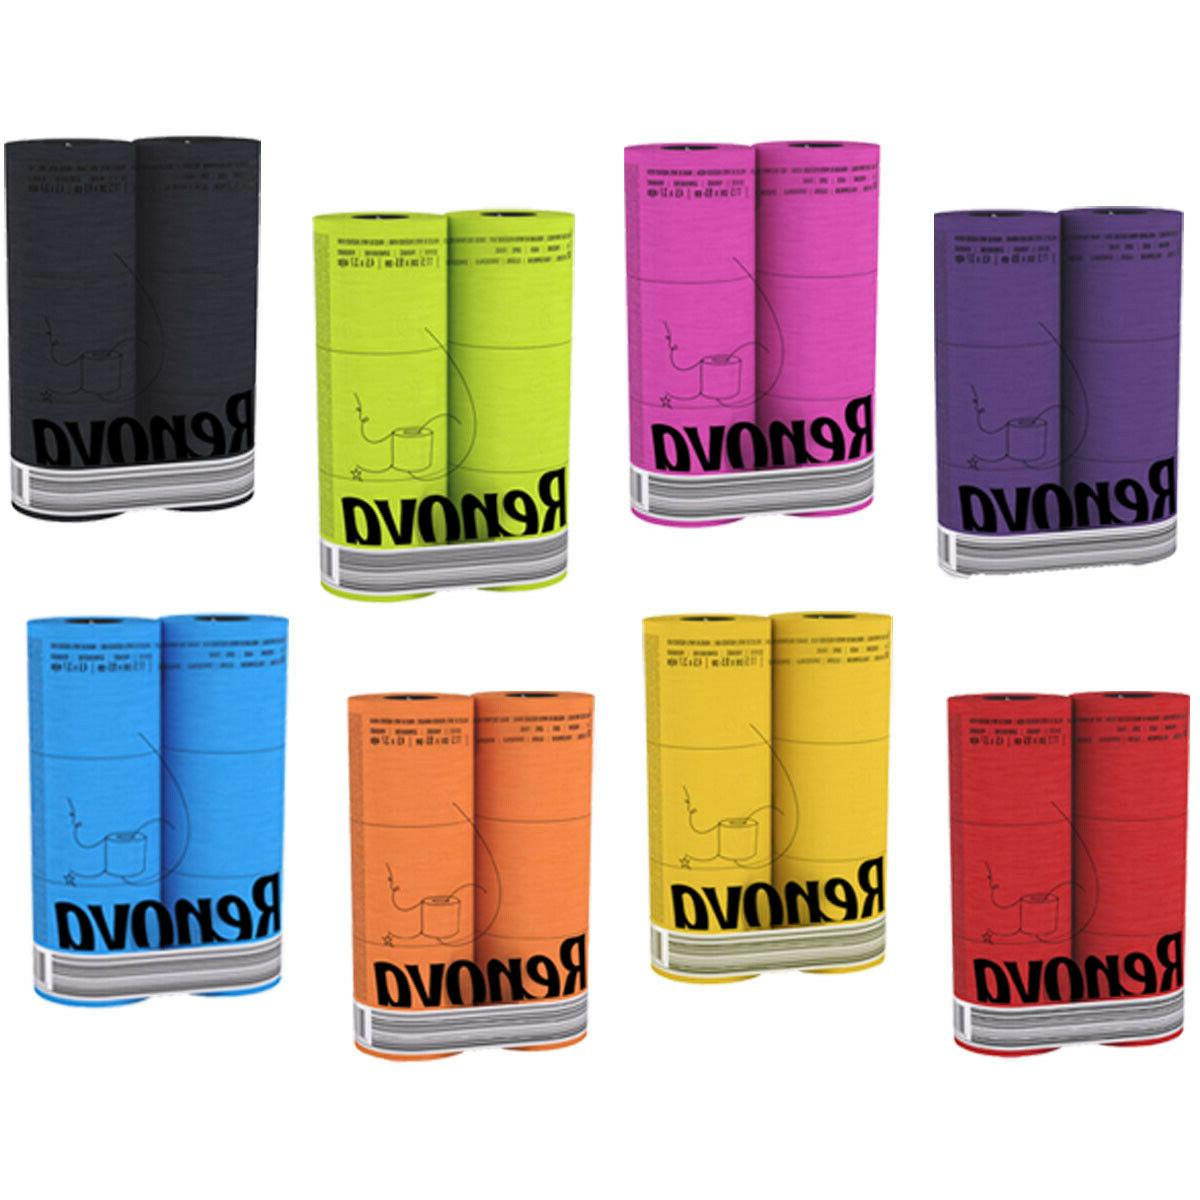 luxury scented colored toilet paper 6 rolls